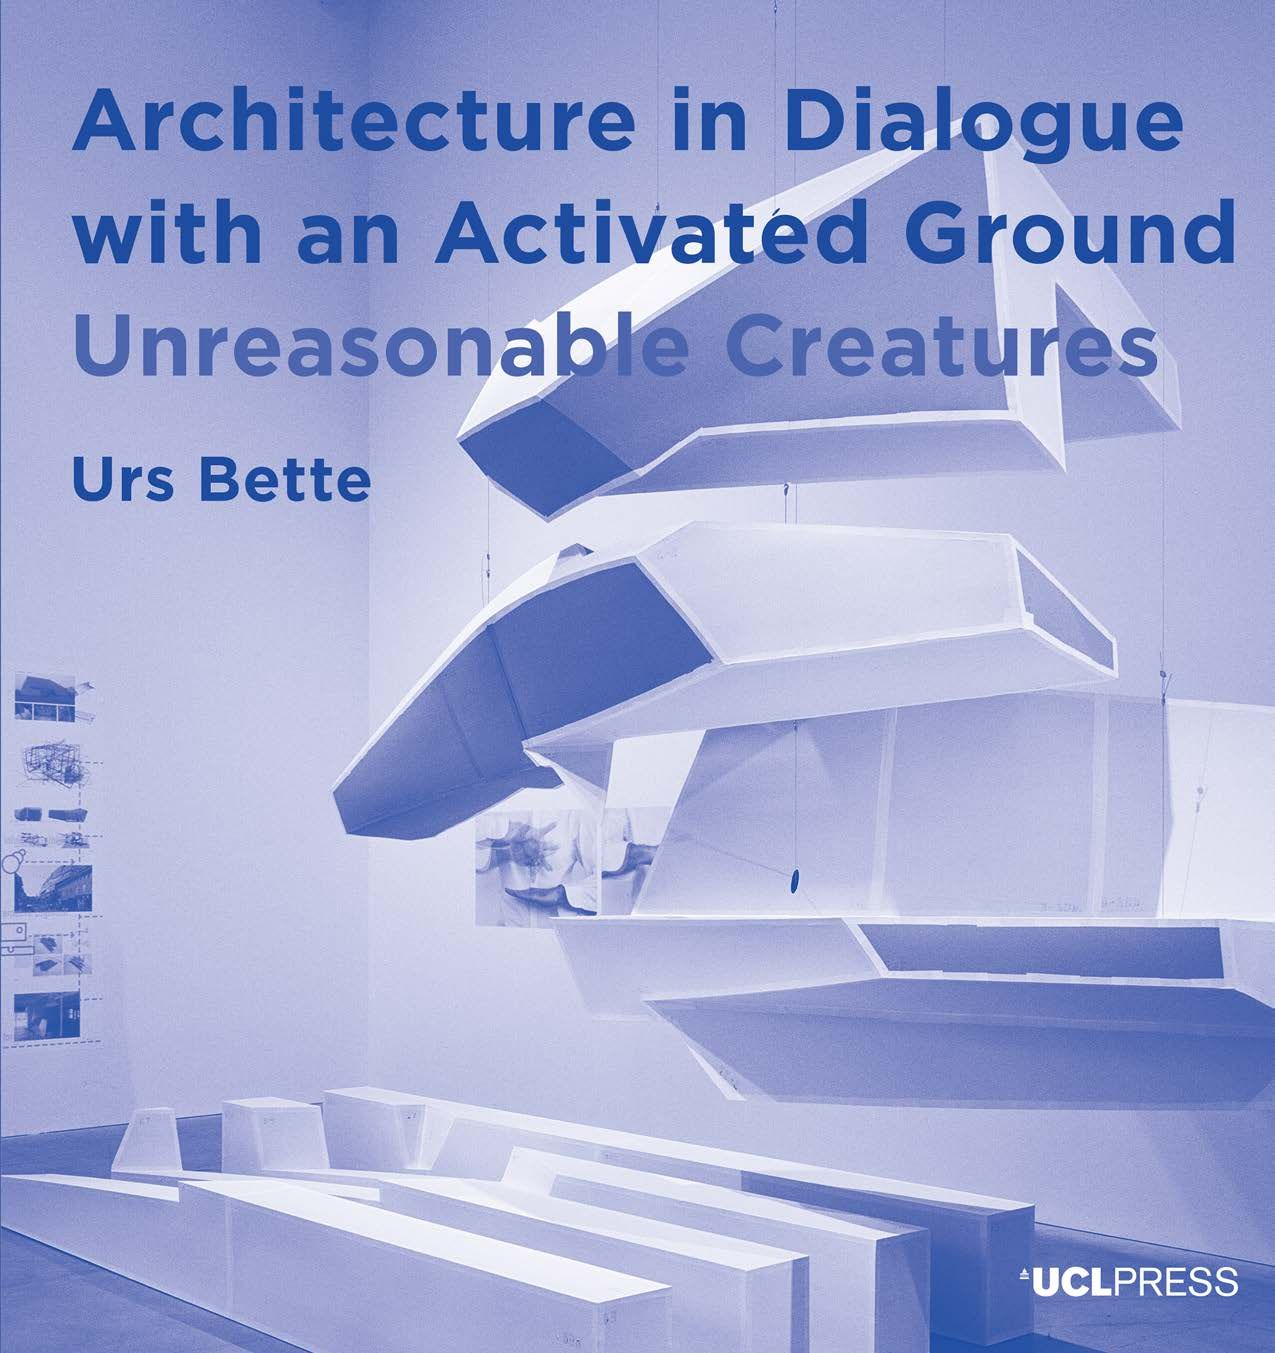 Architecture in Dialogue with an Activated Ground: Unreasonable Creatures